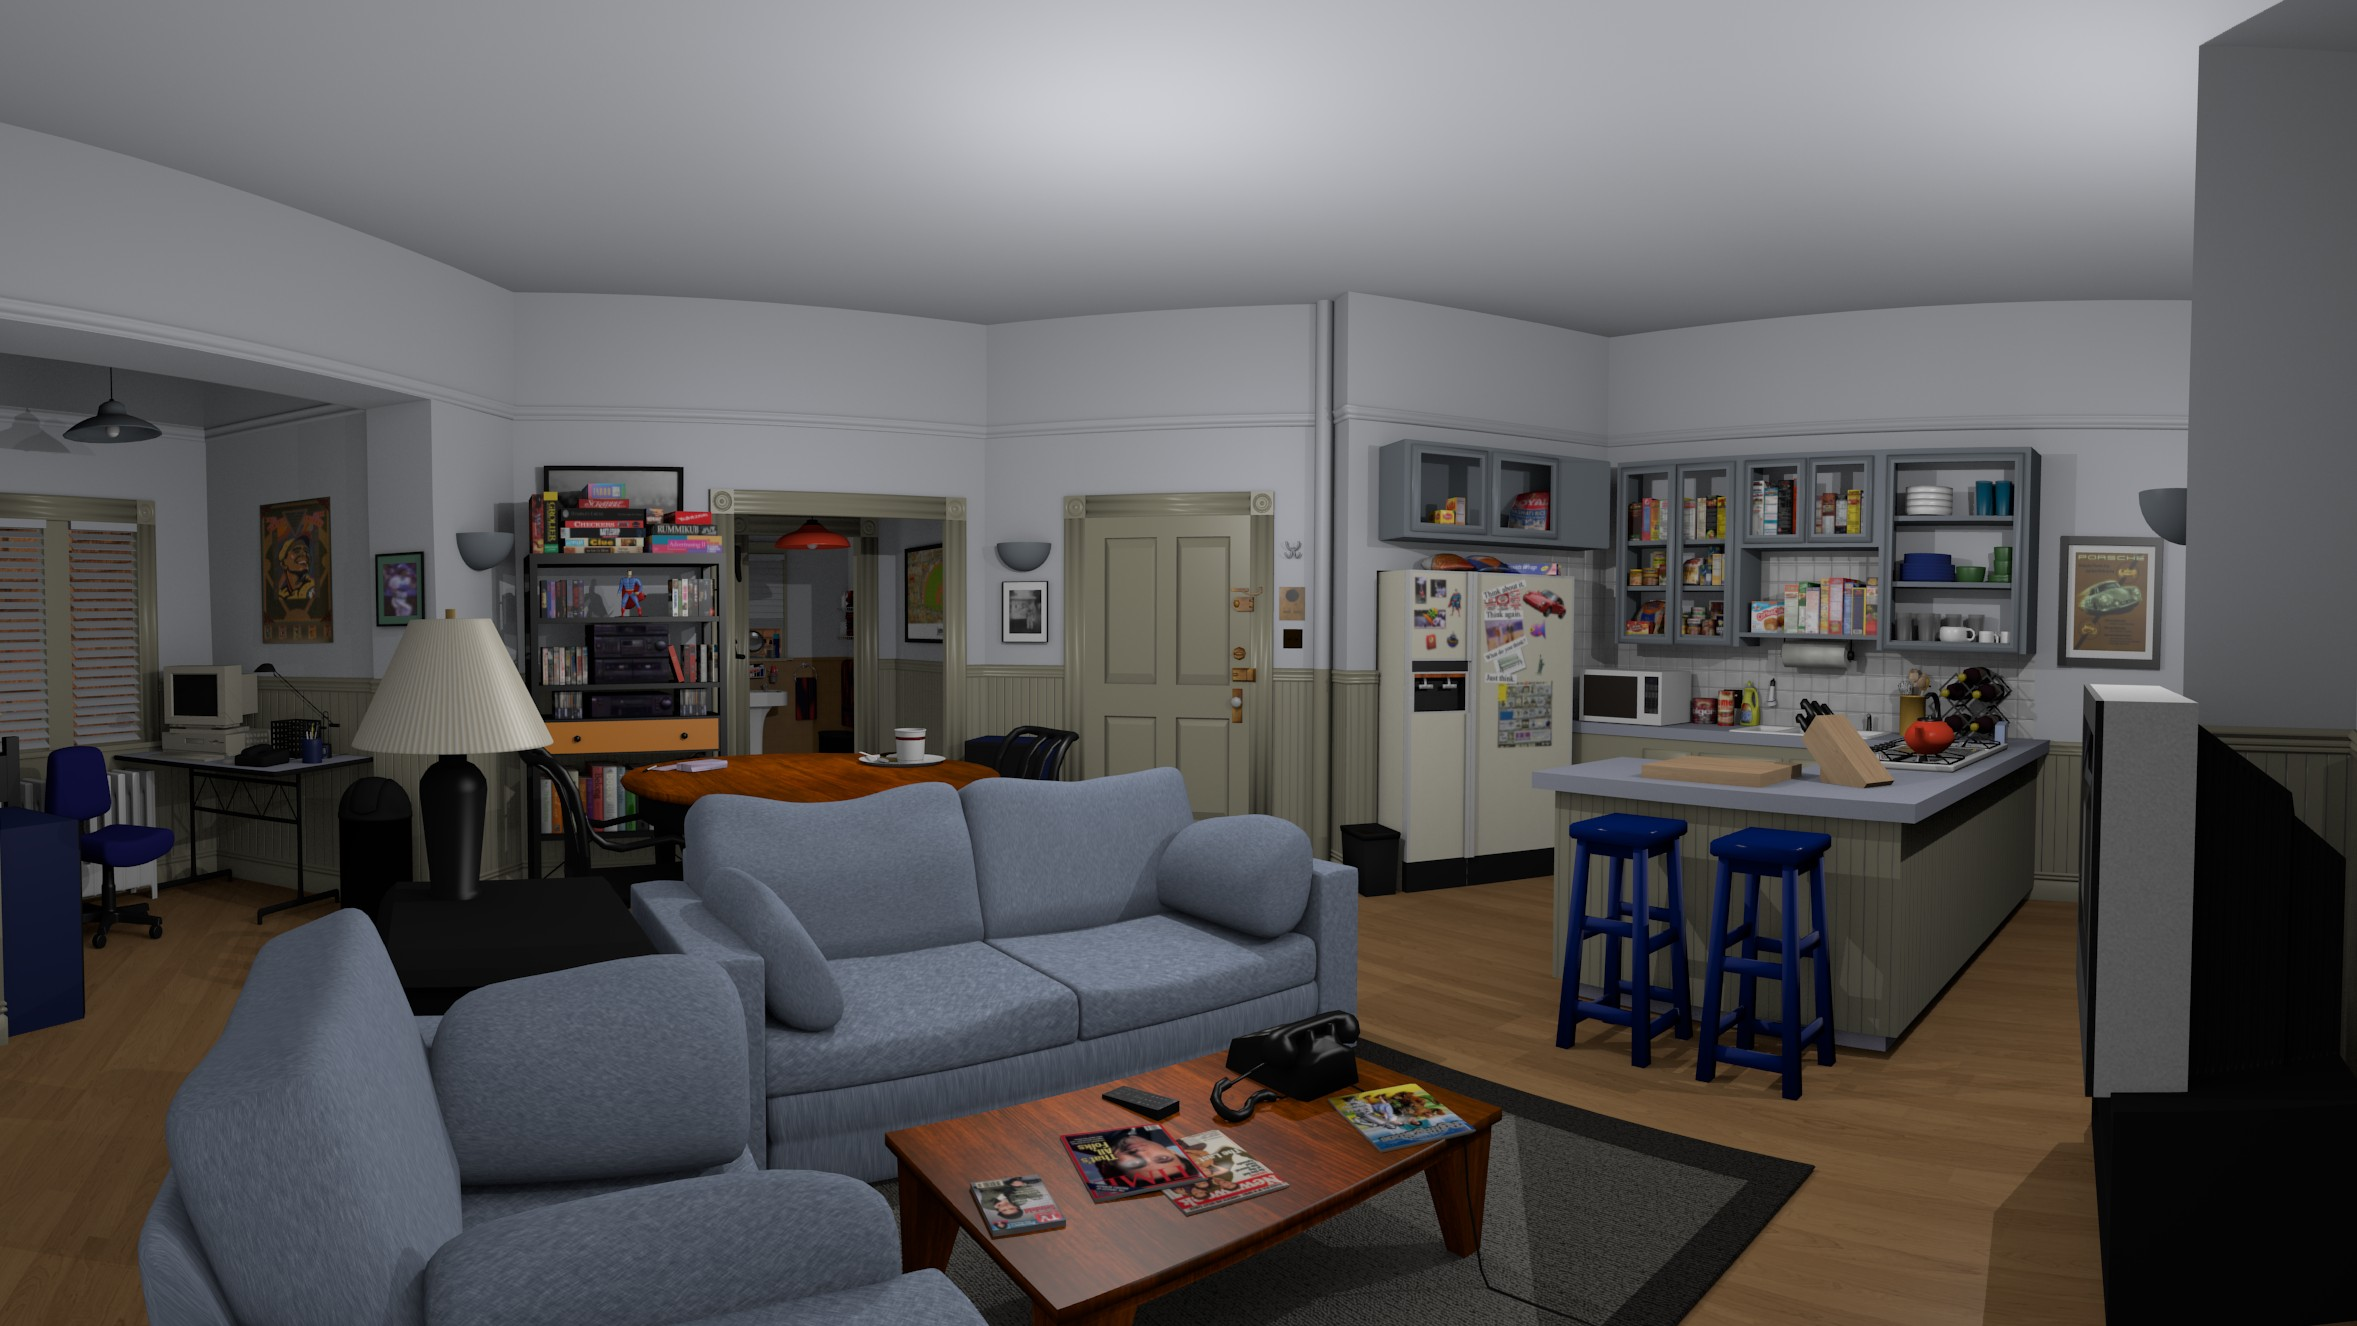 What's the Deal With Seinfeld's Virtual Reality Tour?